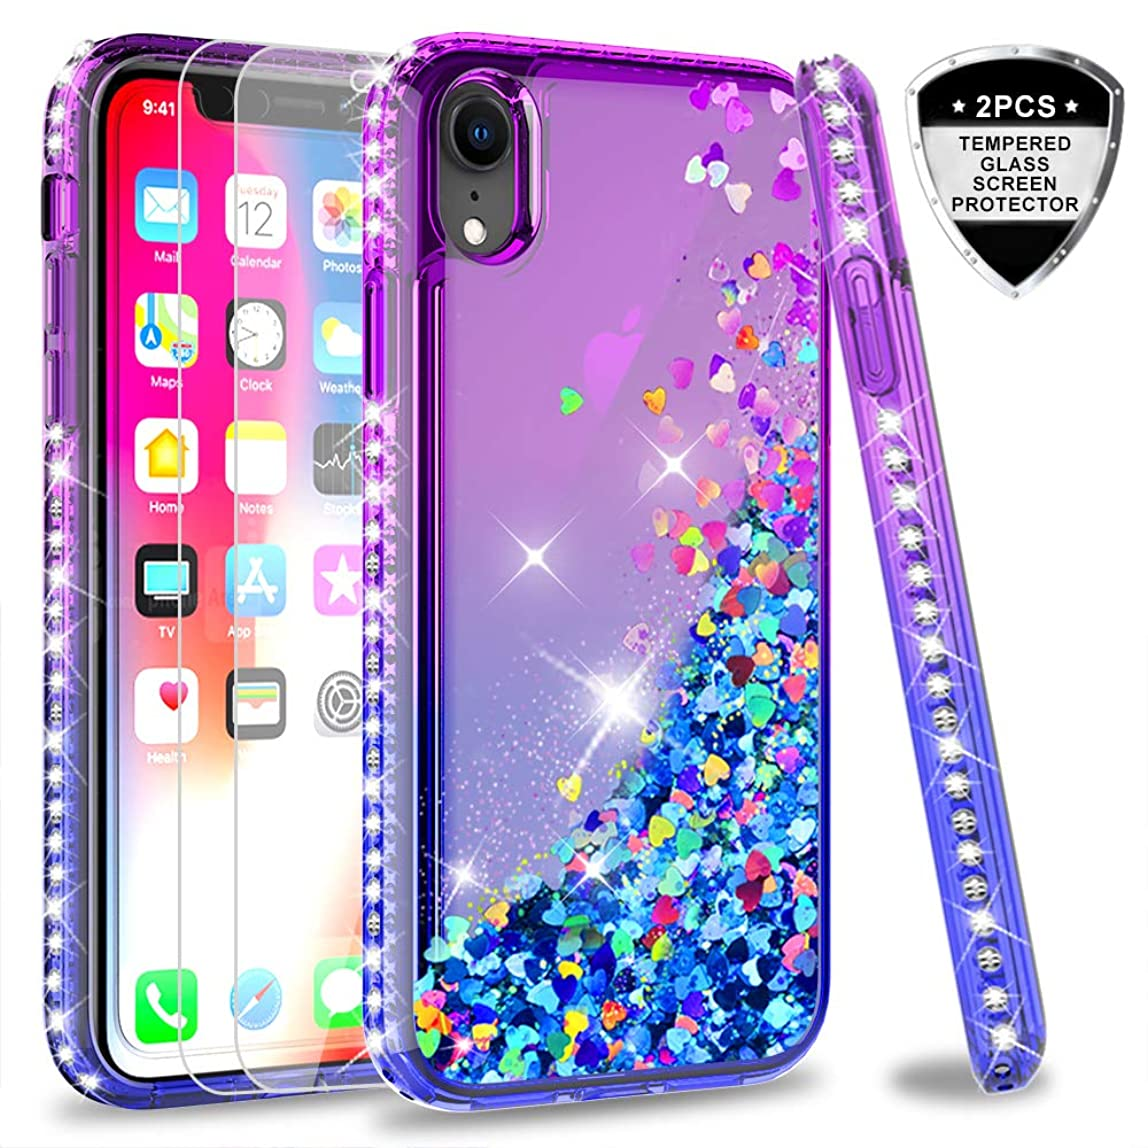 iPhone XR (2018) Glitter Case with Tempered Glass Screen Protector [2 Pack] for Girls Women, LeYi Luxury Diamond Quicksand Liquid TPU Gradient Phone Case for Apple iPhone XR (6.1 inch) Purple/Blue yynivtr374522